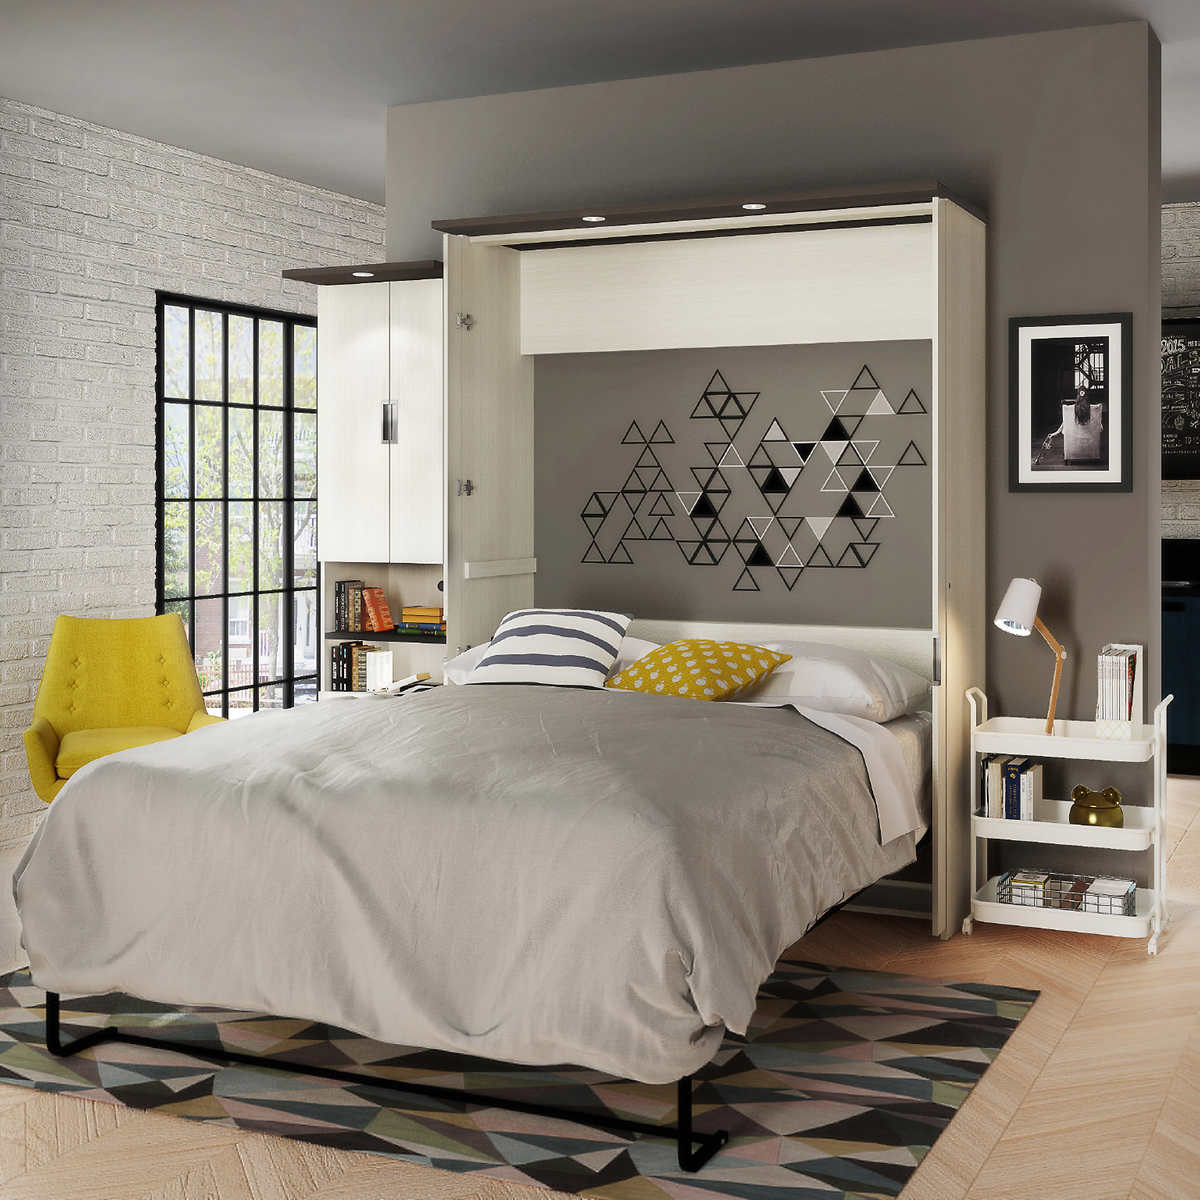 Wall queen bed image collections home wall decoration ideas lumina queen wall bed with desk and storage unit click to zoom amipublicfo image collections amipublicfo Image collections